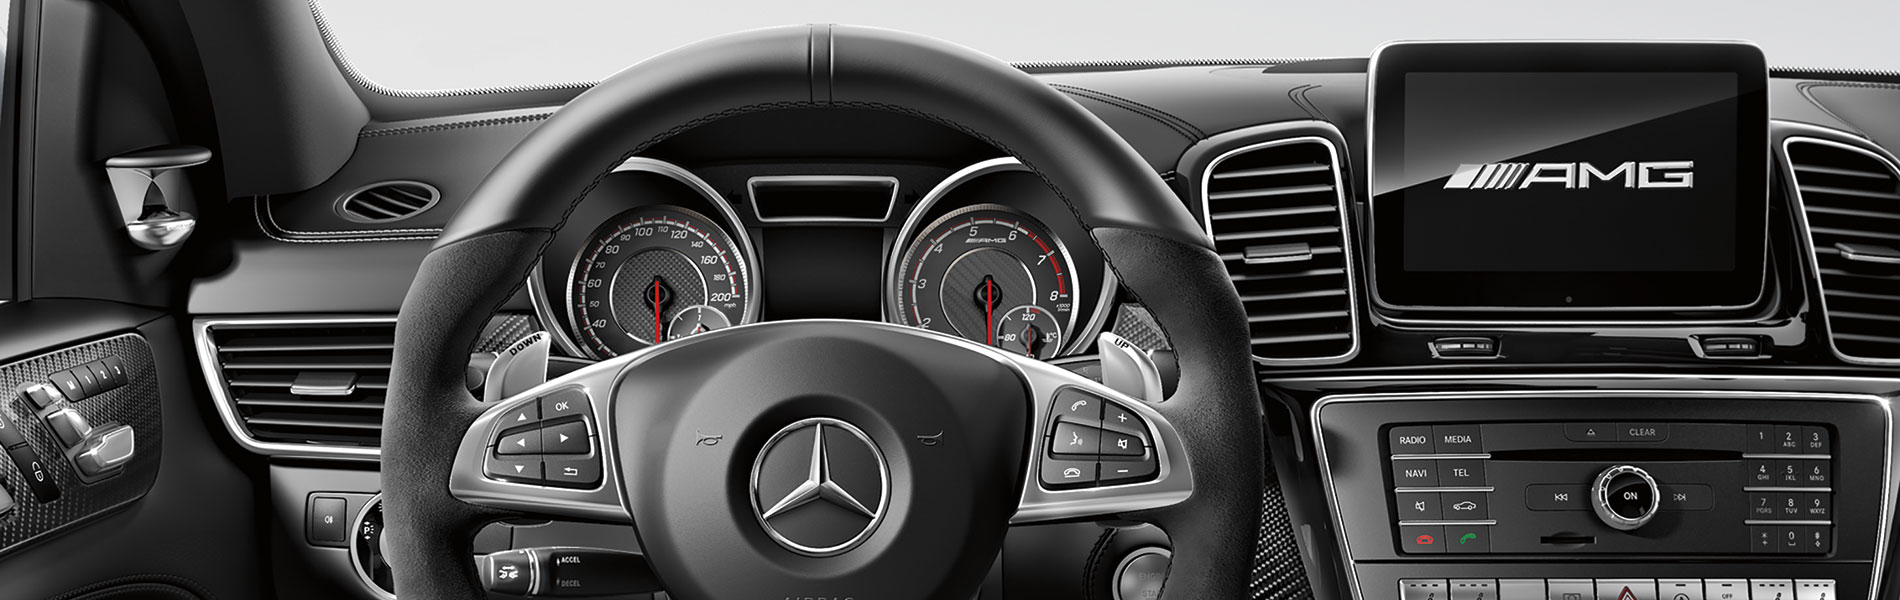 Mercedes Benz GLE Interior Vehicle Features